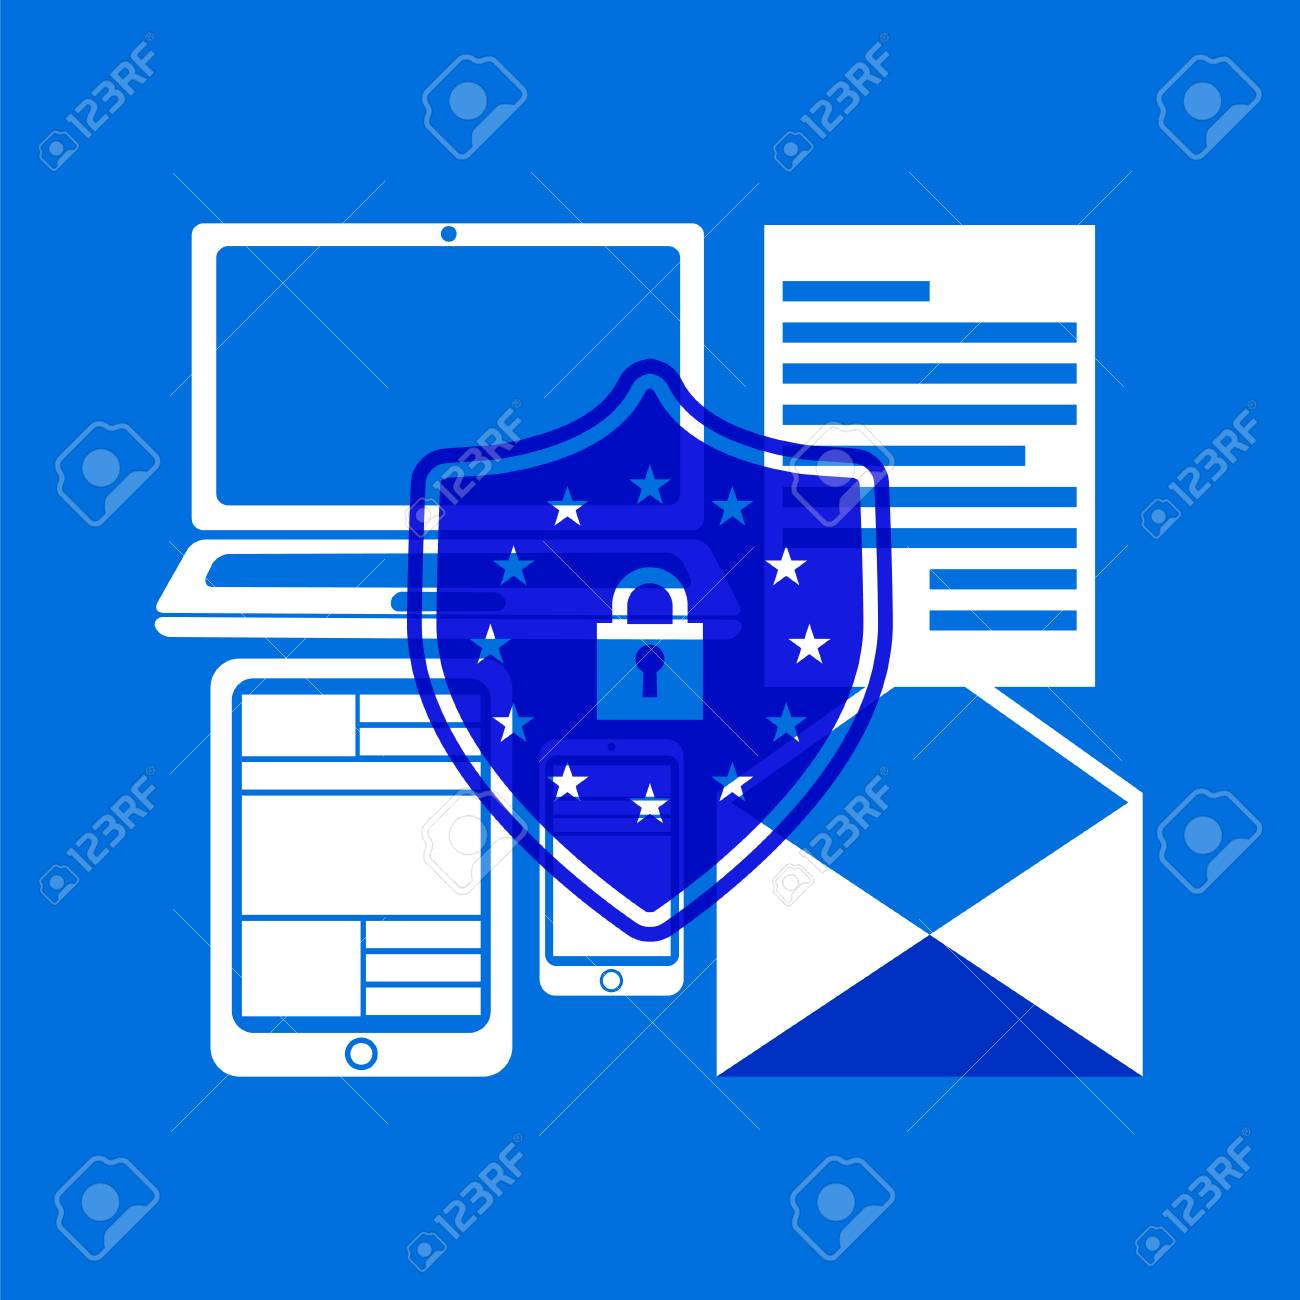 GDPR concept. Stock vector illustration of padlock with EU flag stars protecting different private information on computer and phone screens for General Data Protection Regulation. - 92810604